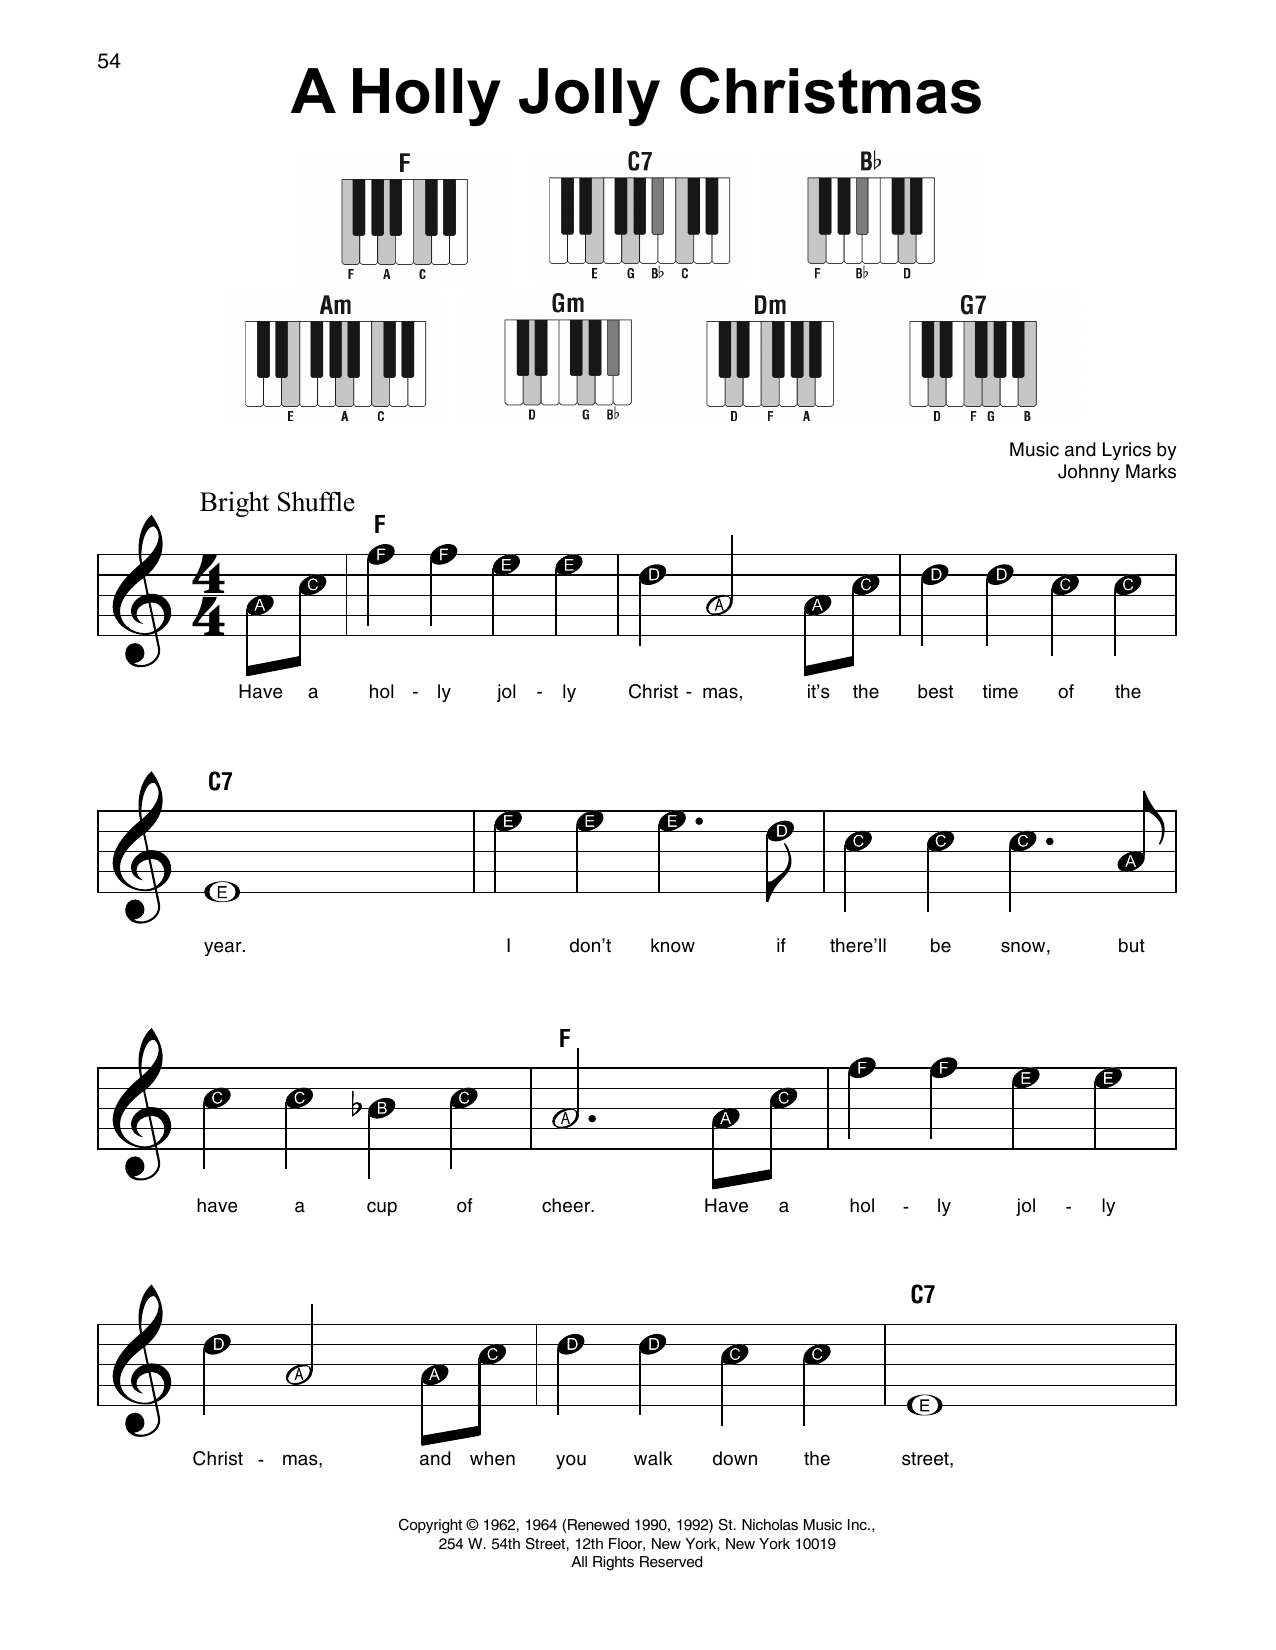 A Holly Jolly Christmas sheet music by Johnny Marks (Super Easy ...